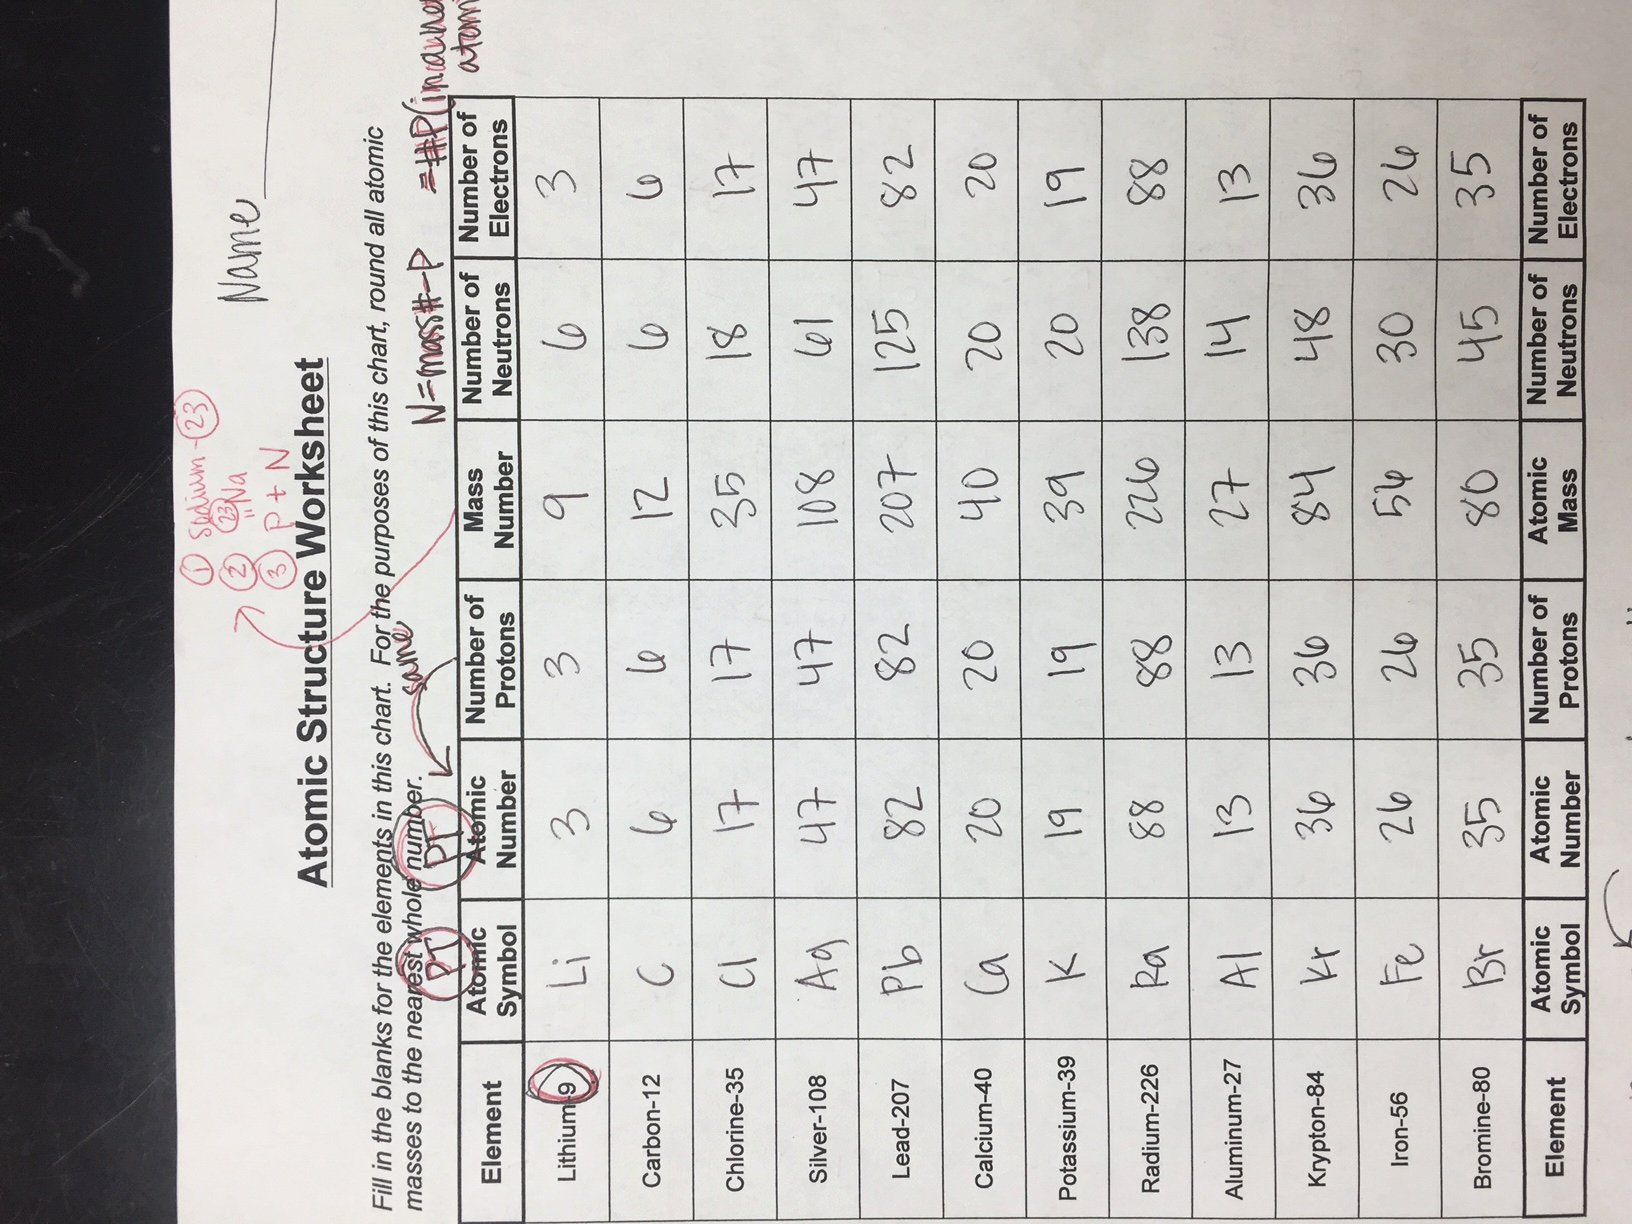 Atomic Structure Worksheet Answers Key Awesome Unit 2 atomic Structure Ms Holl S Physical Science Class